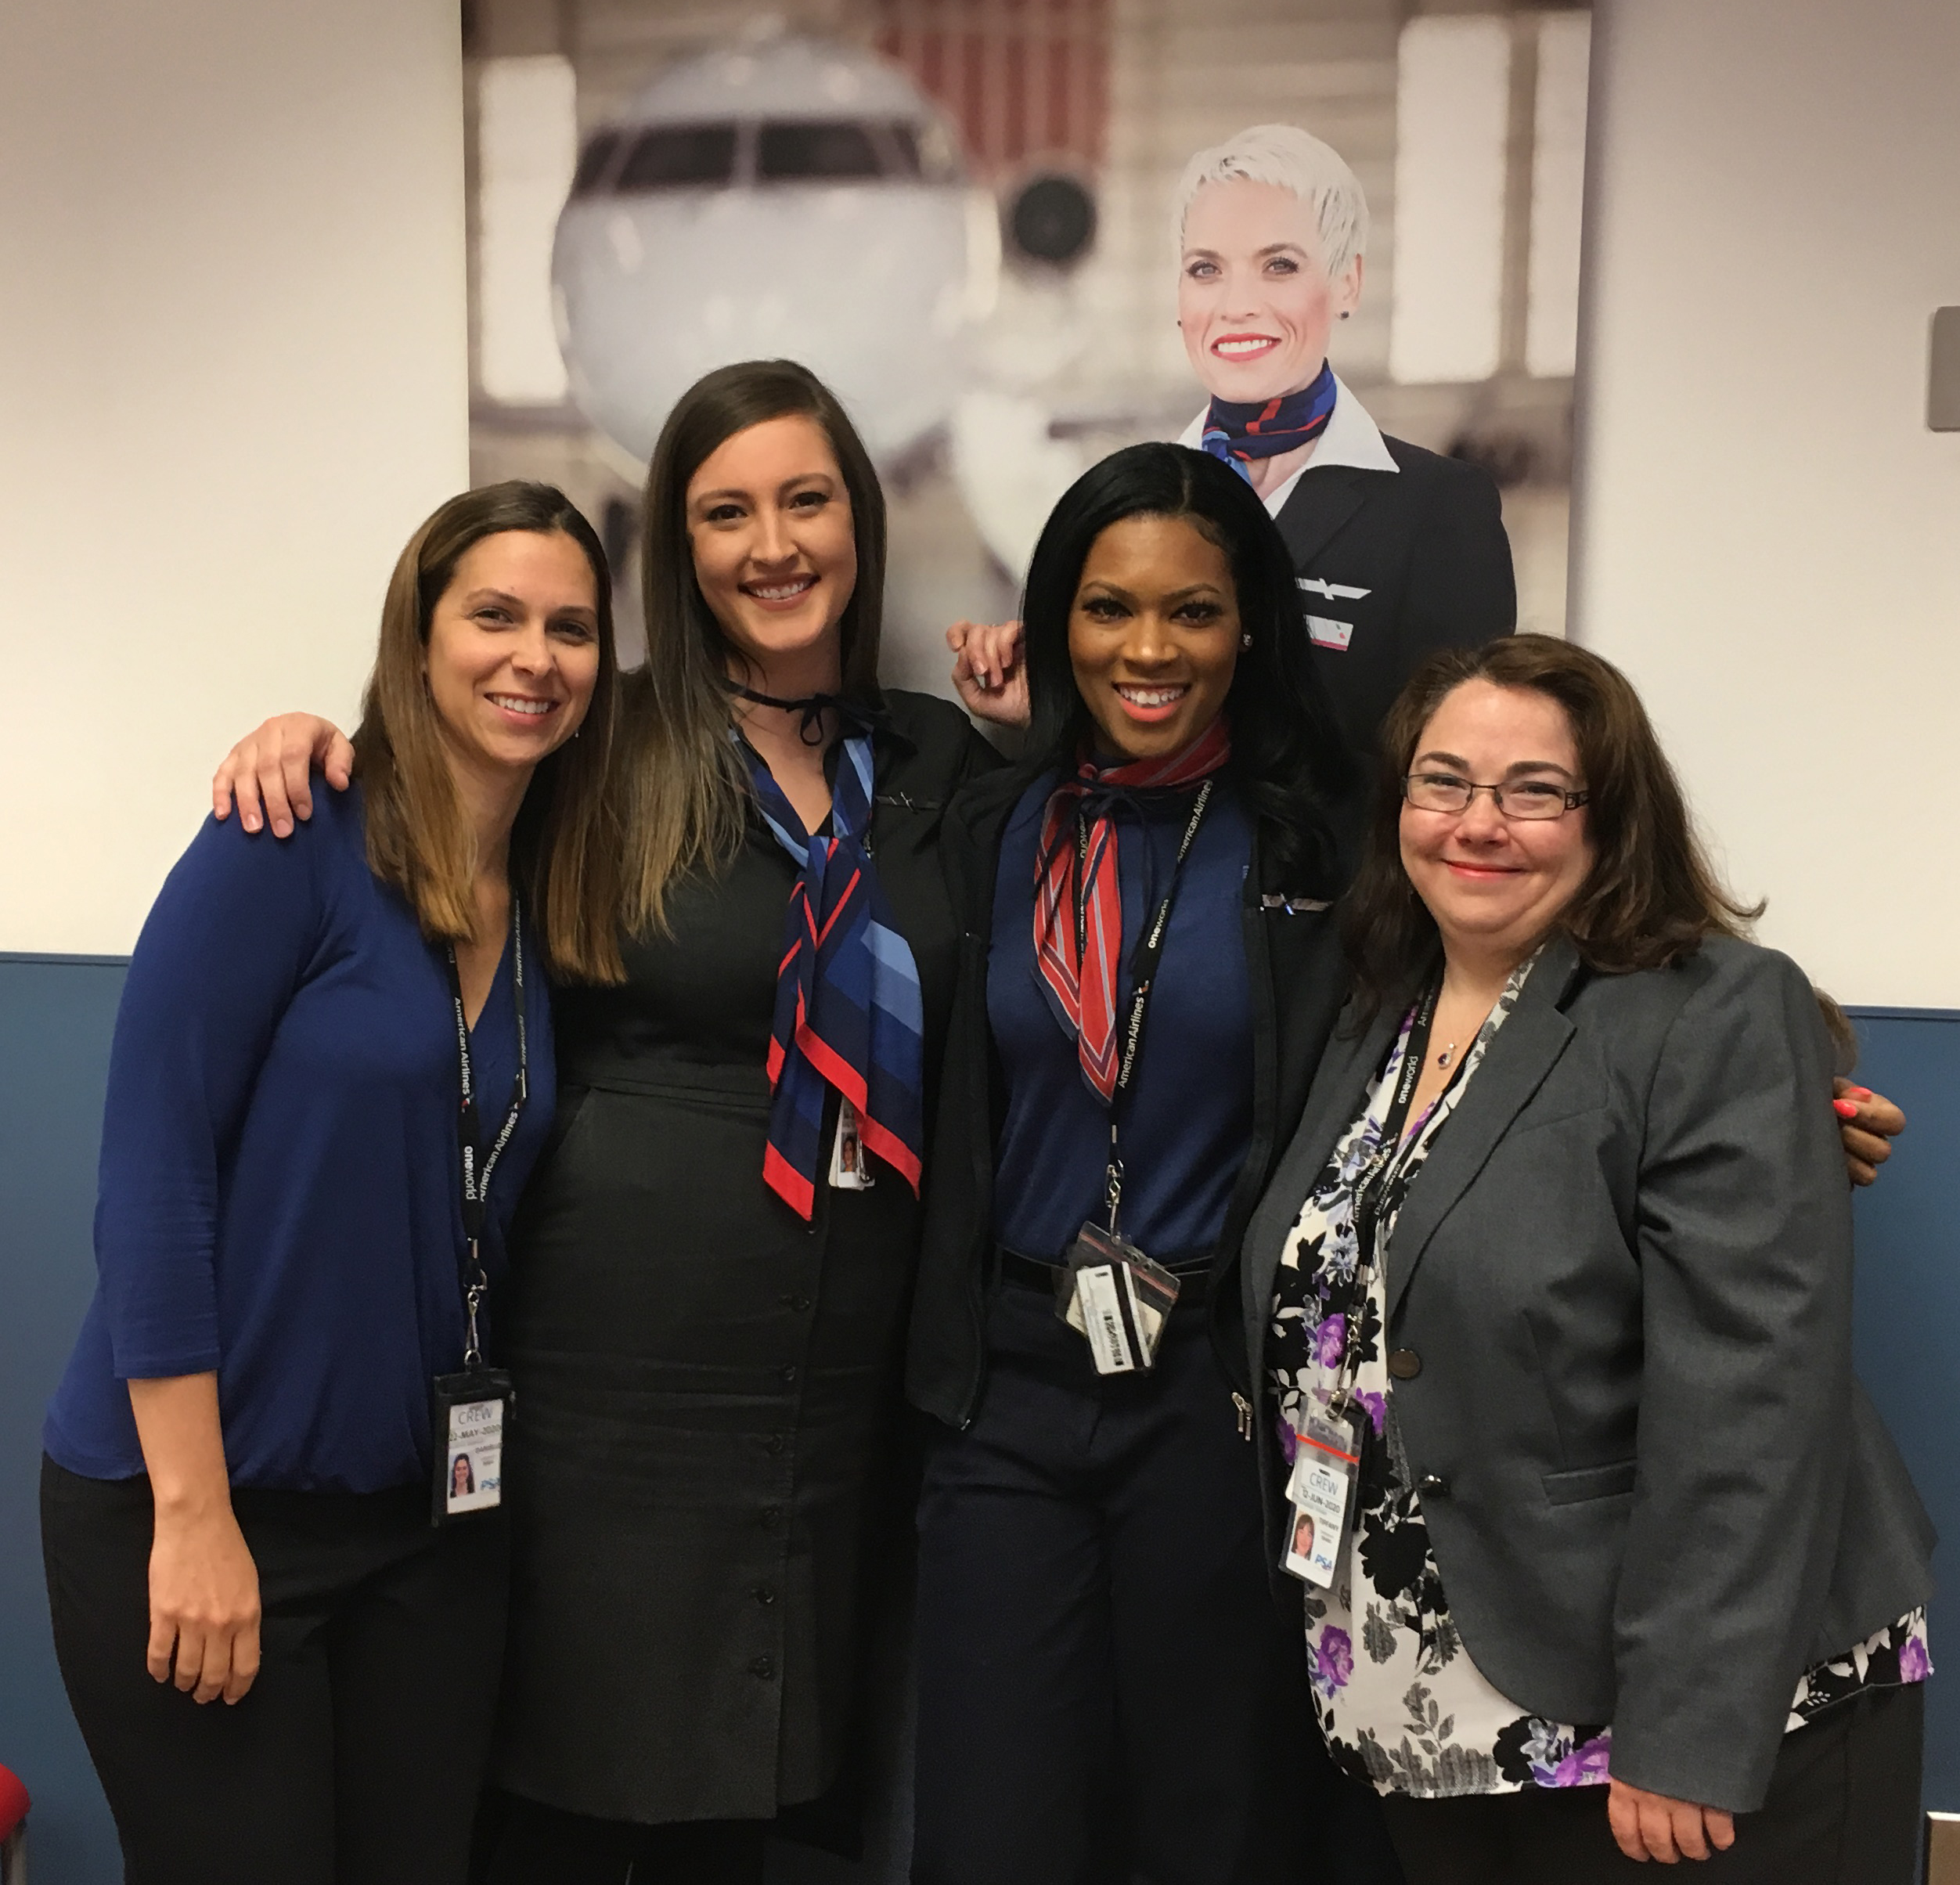 Flight Attendants honored with Real American Hero Award for actions during emergency